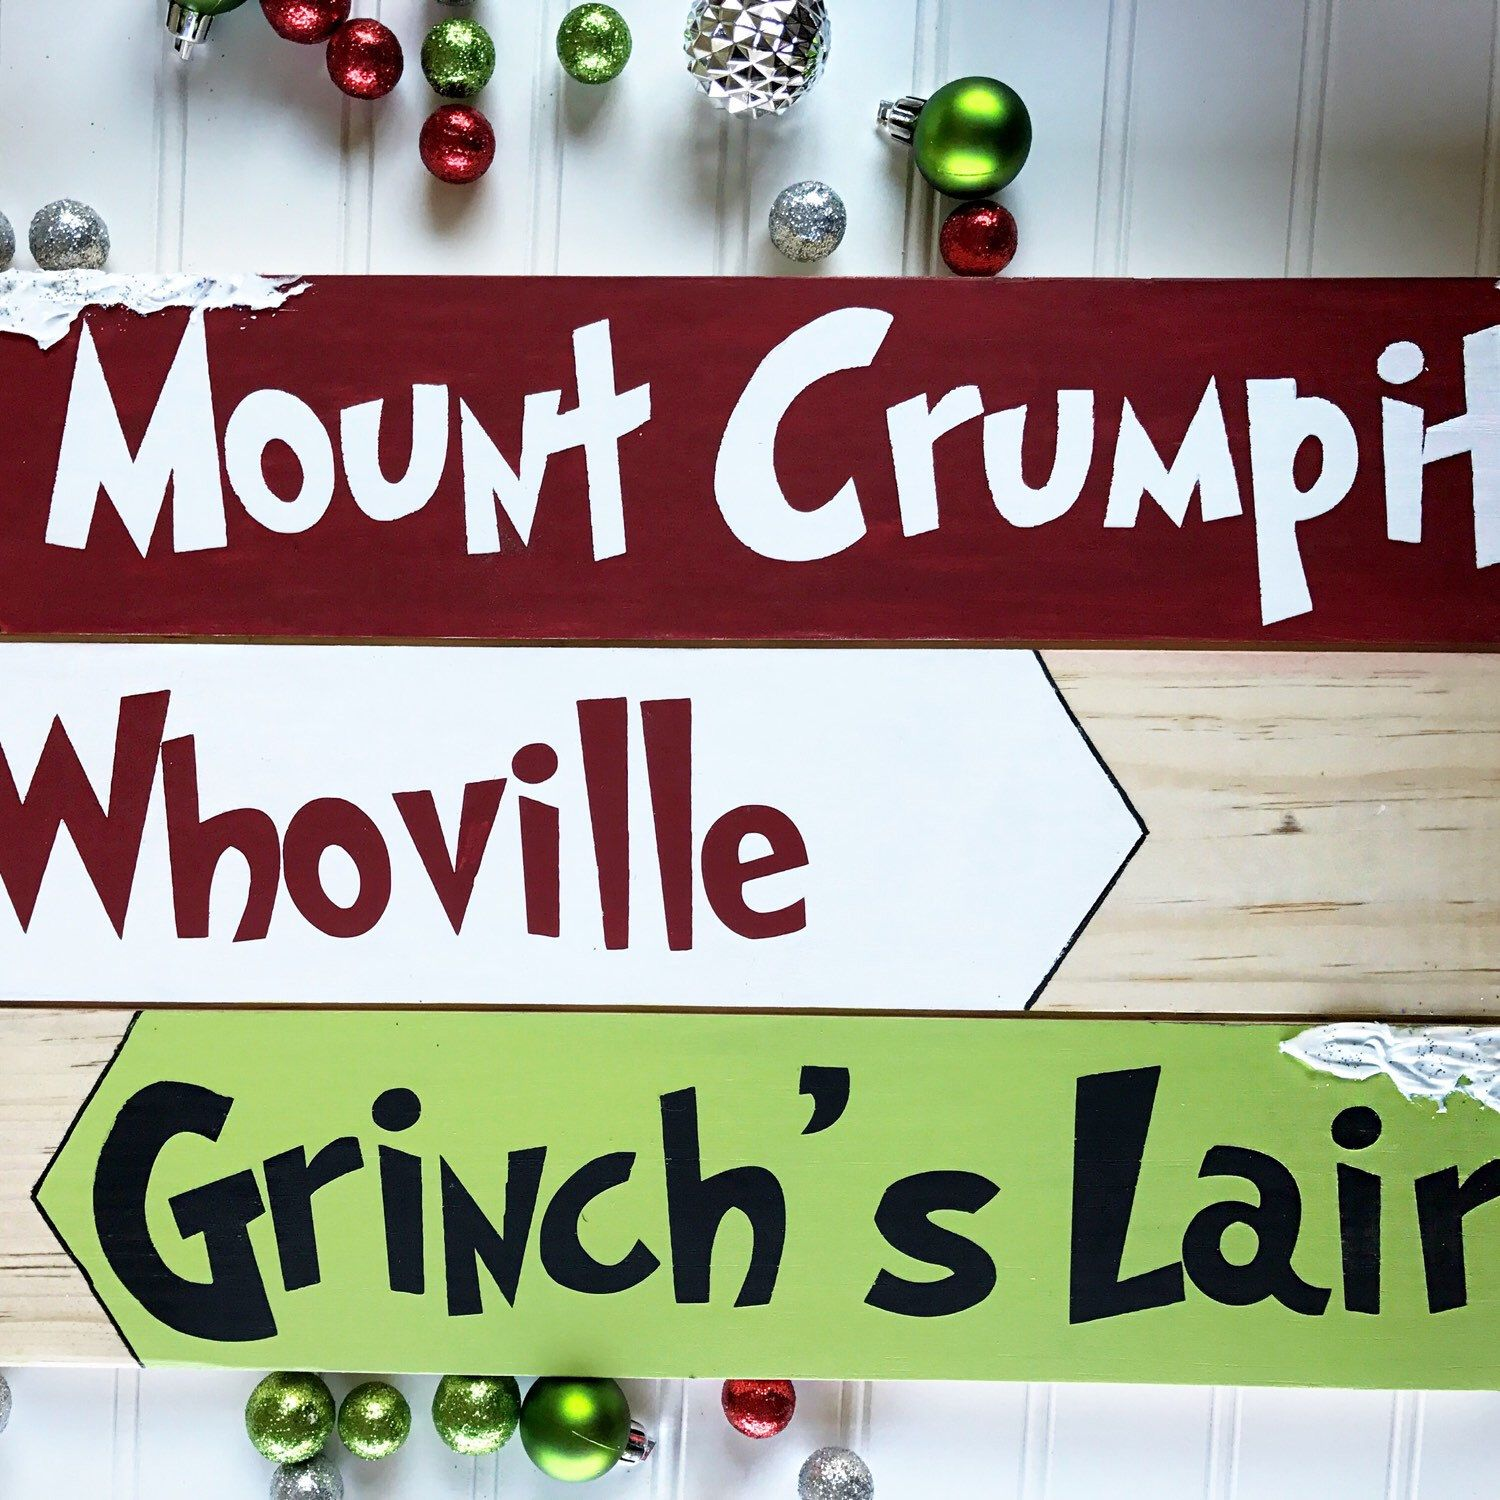 Grinch Christmas decoration Whoville Grinch s Lair and Mount